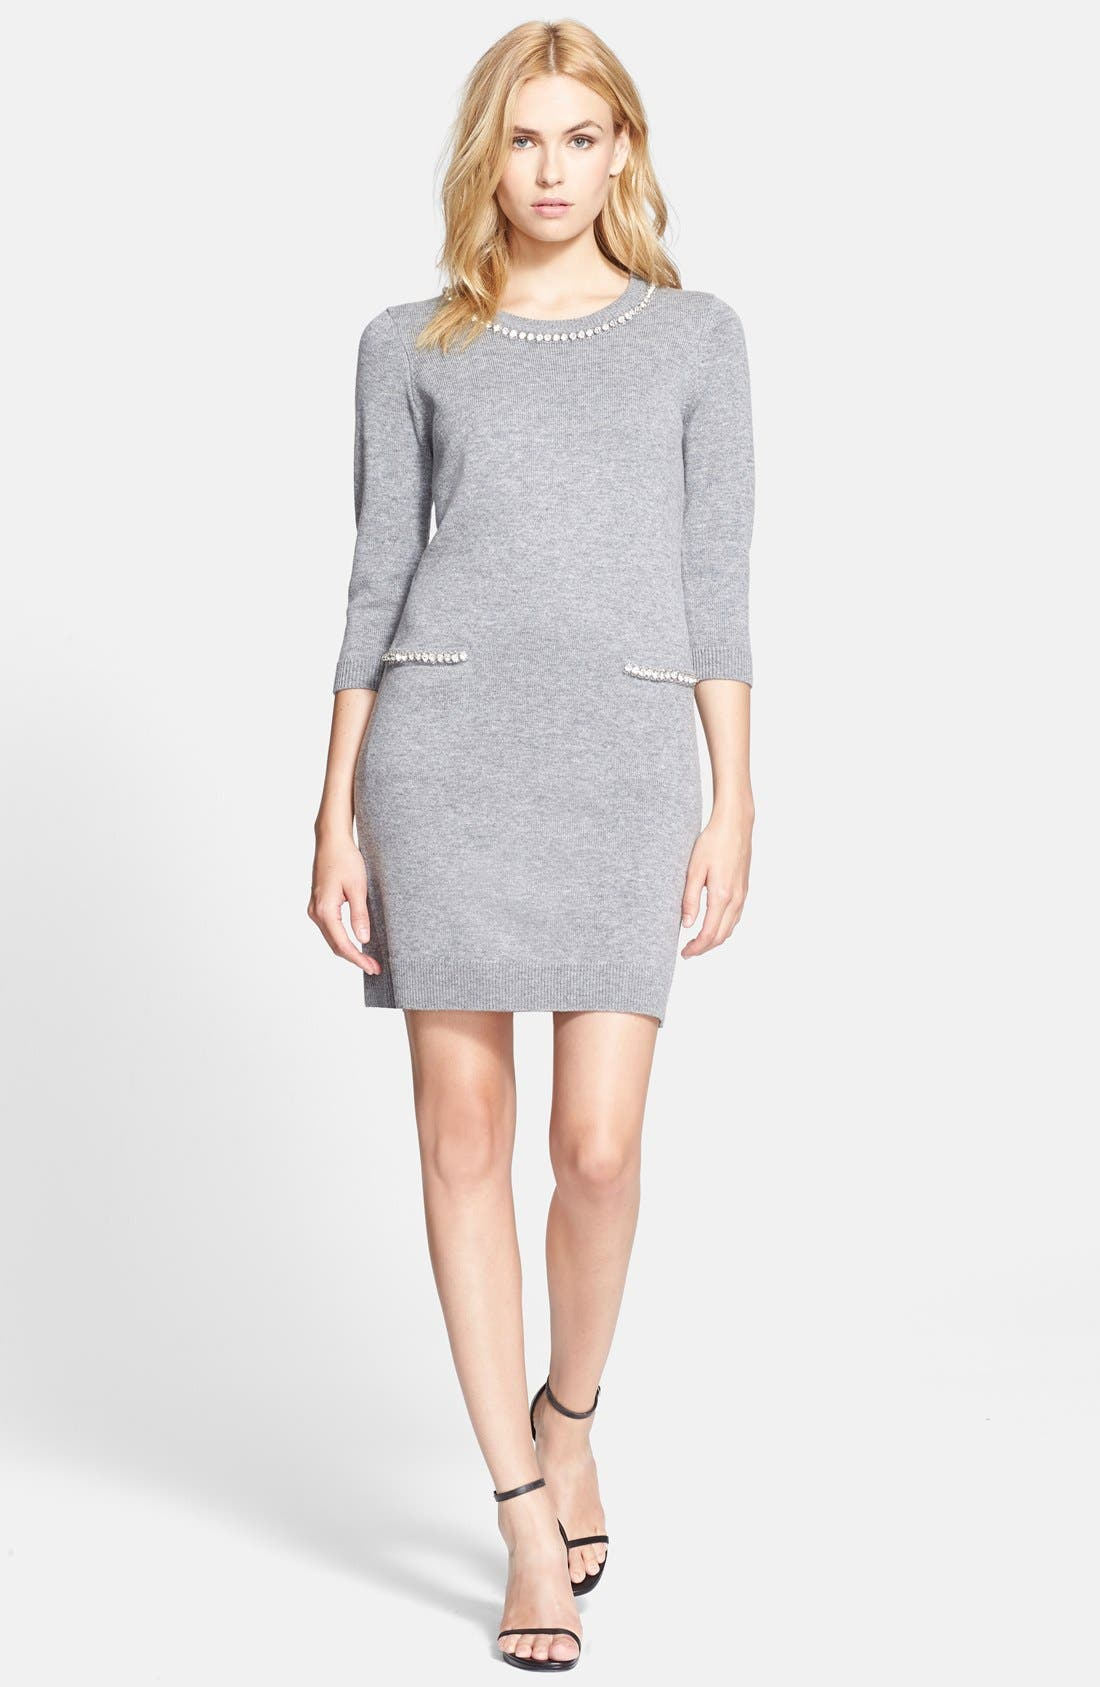 Alternate Image 1 Selected - Milly Embellished Trim Sweater Dress